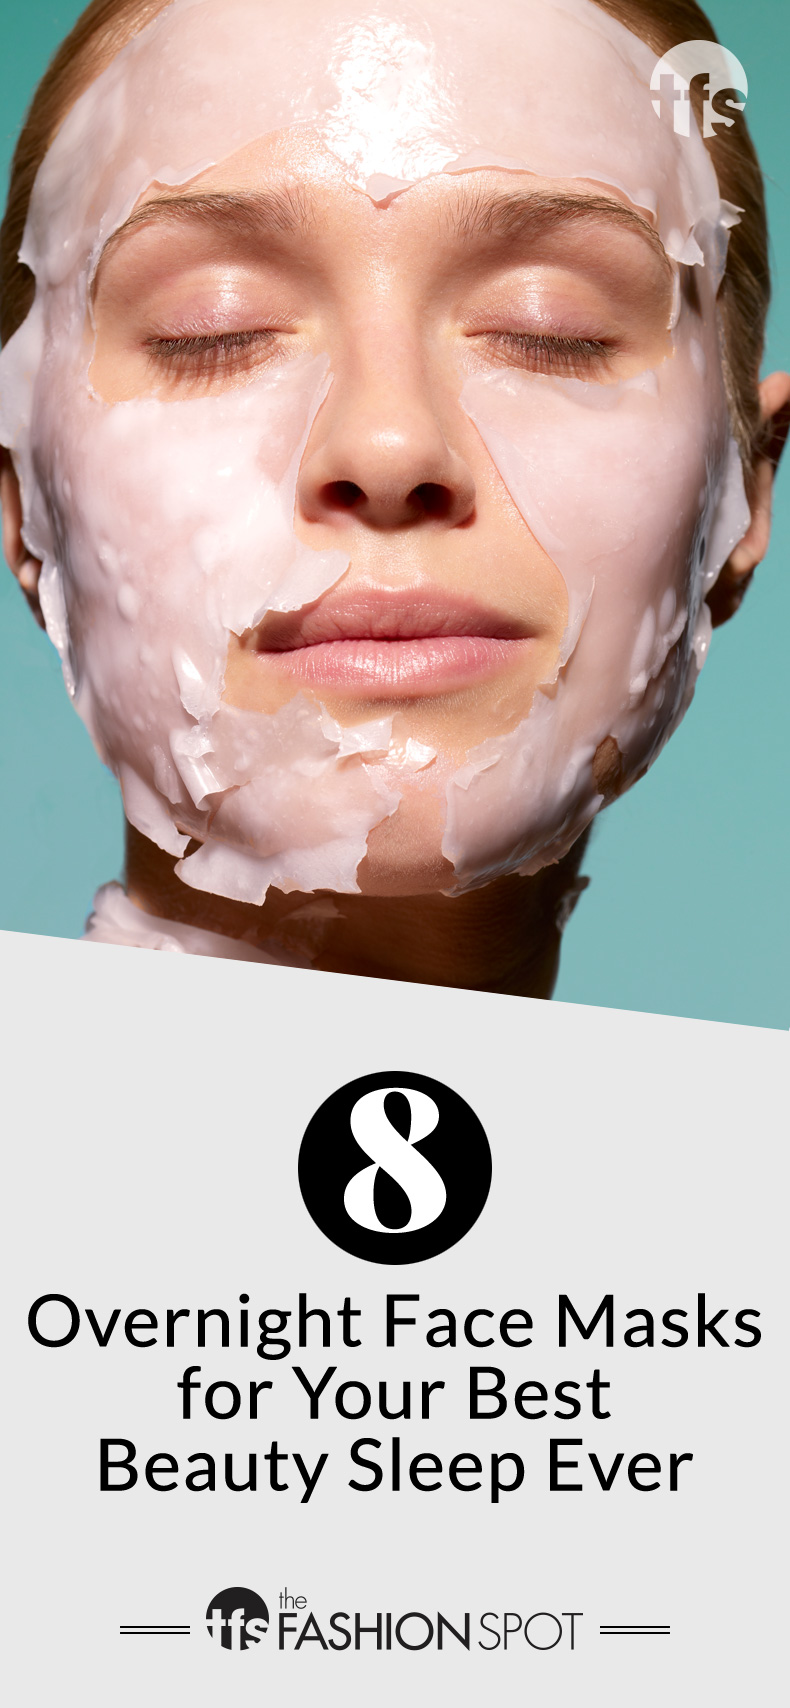 8 Overnight Face Masks for the Best Beauty Sleep Ever